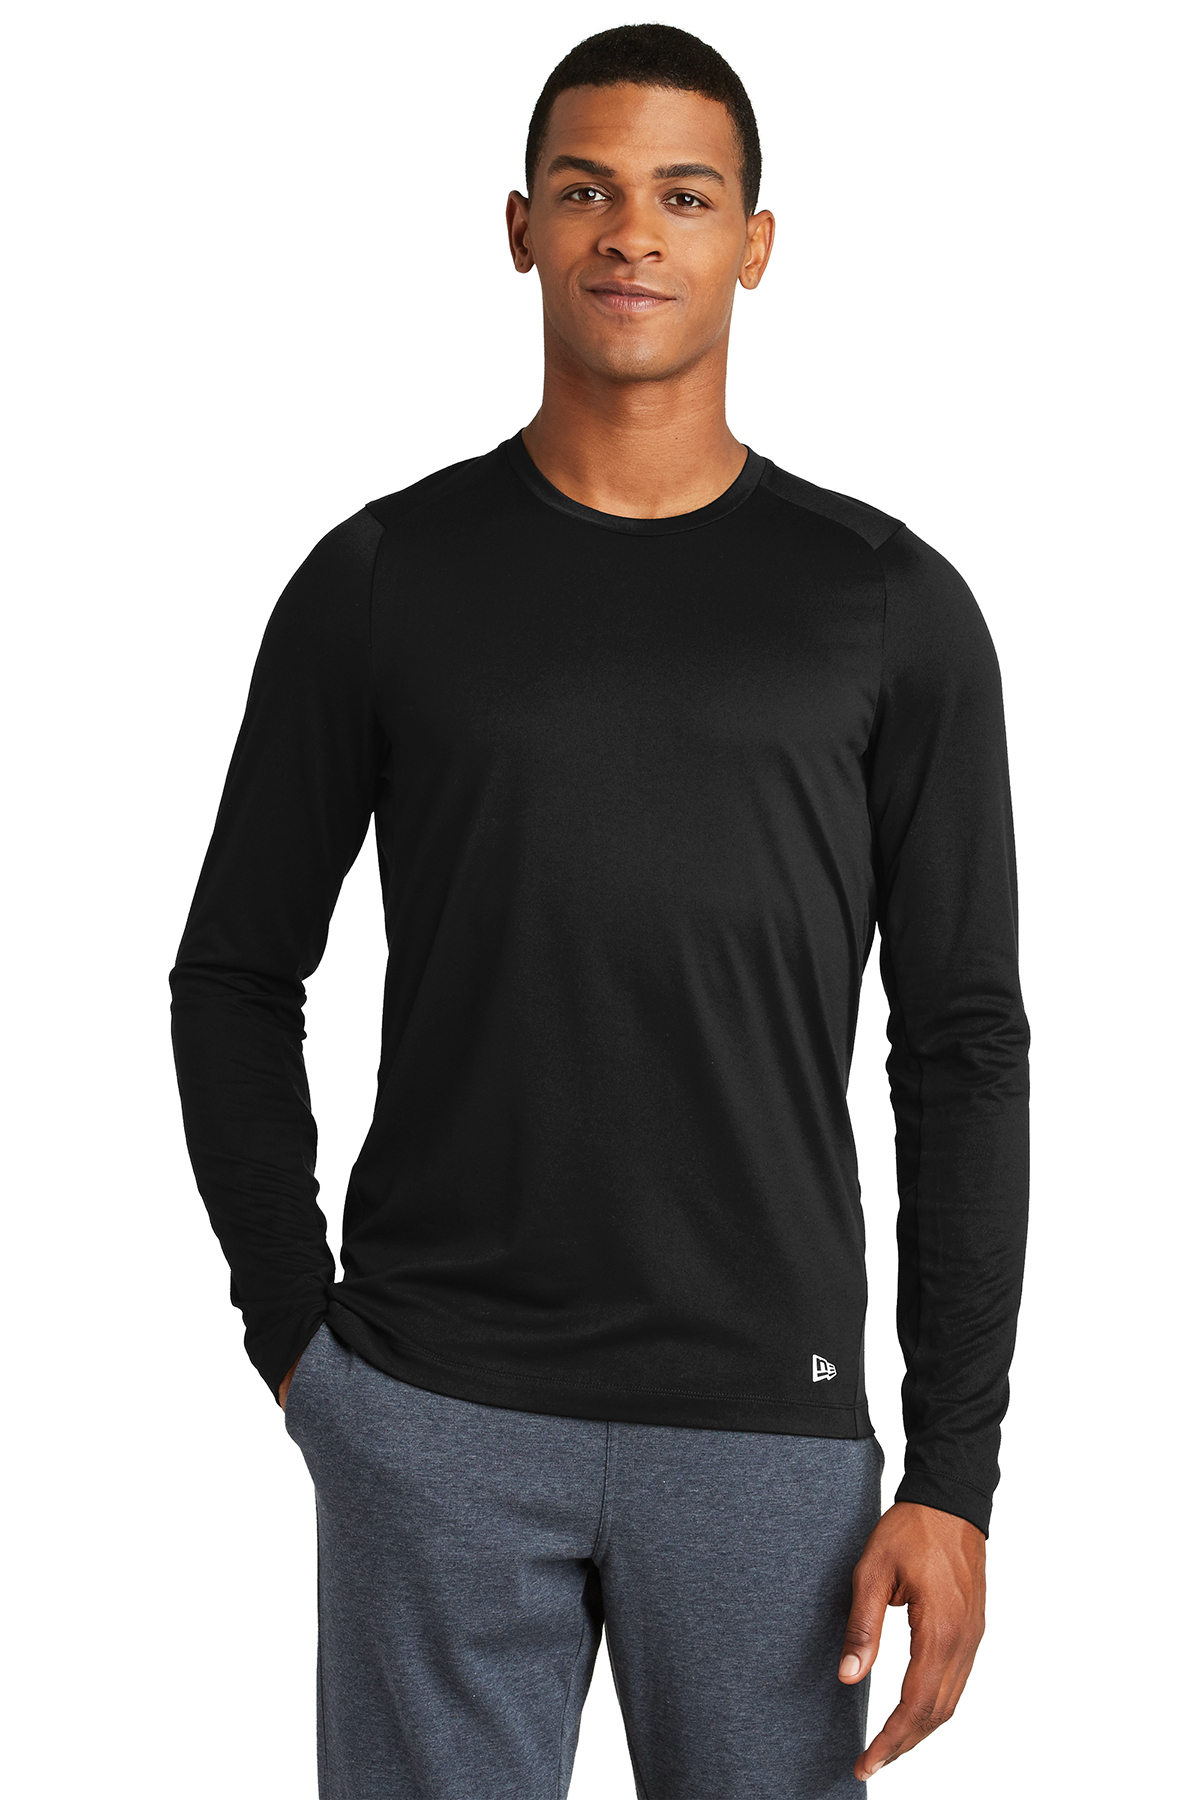 New Era NEA201 - Men's Series Performance Long Sleeve ...